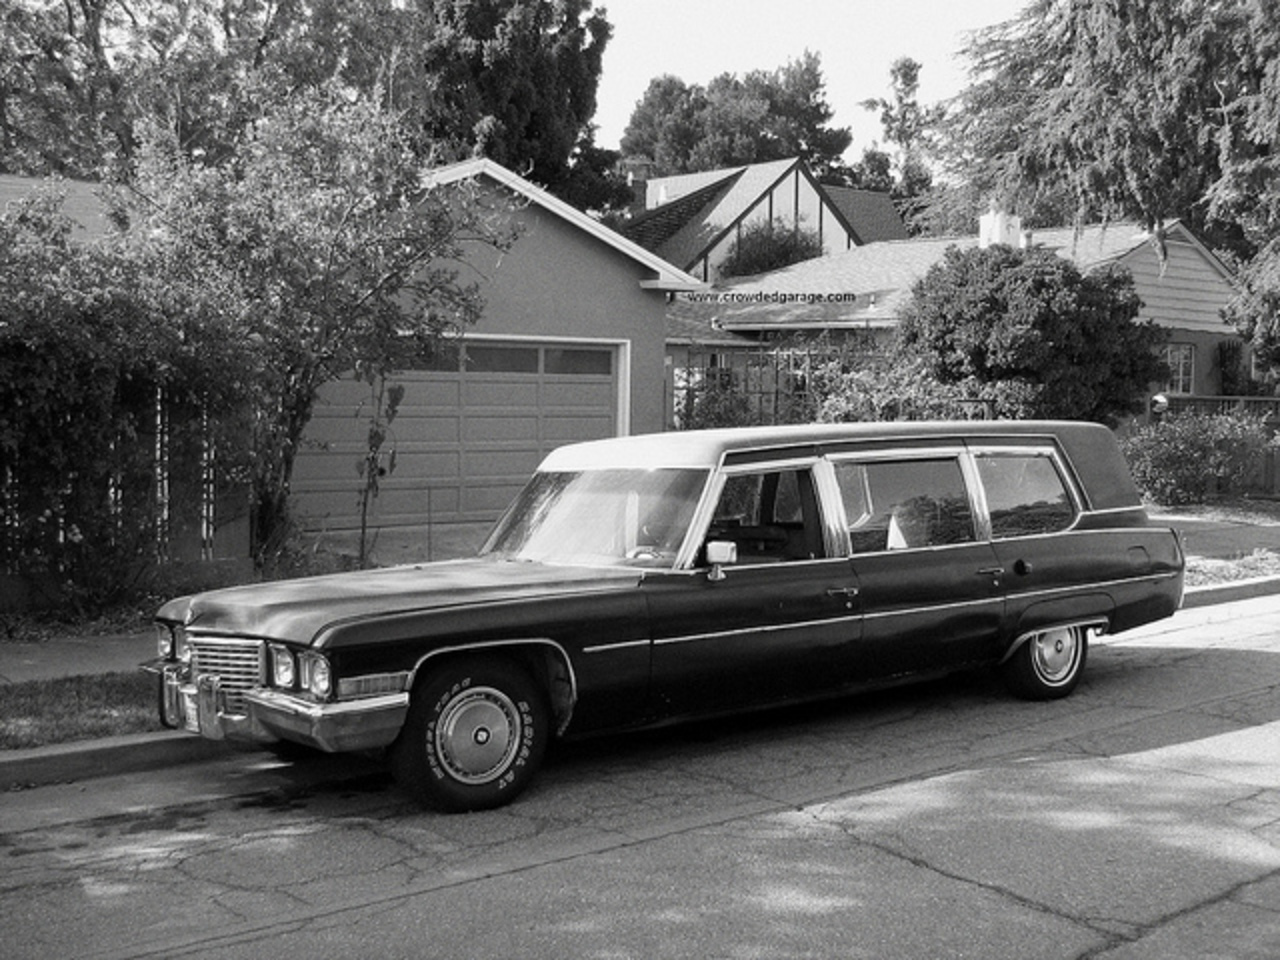 My '72 Cadillac Hearse! | Flickr - Photo Sharing!